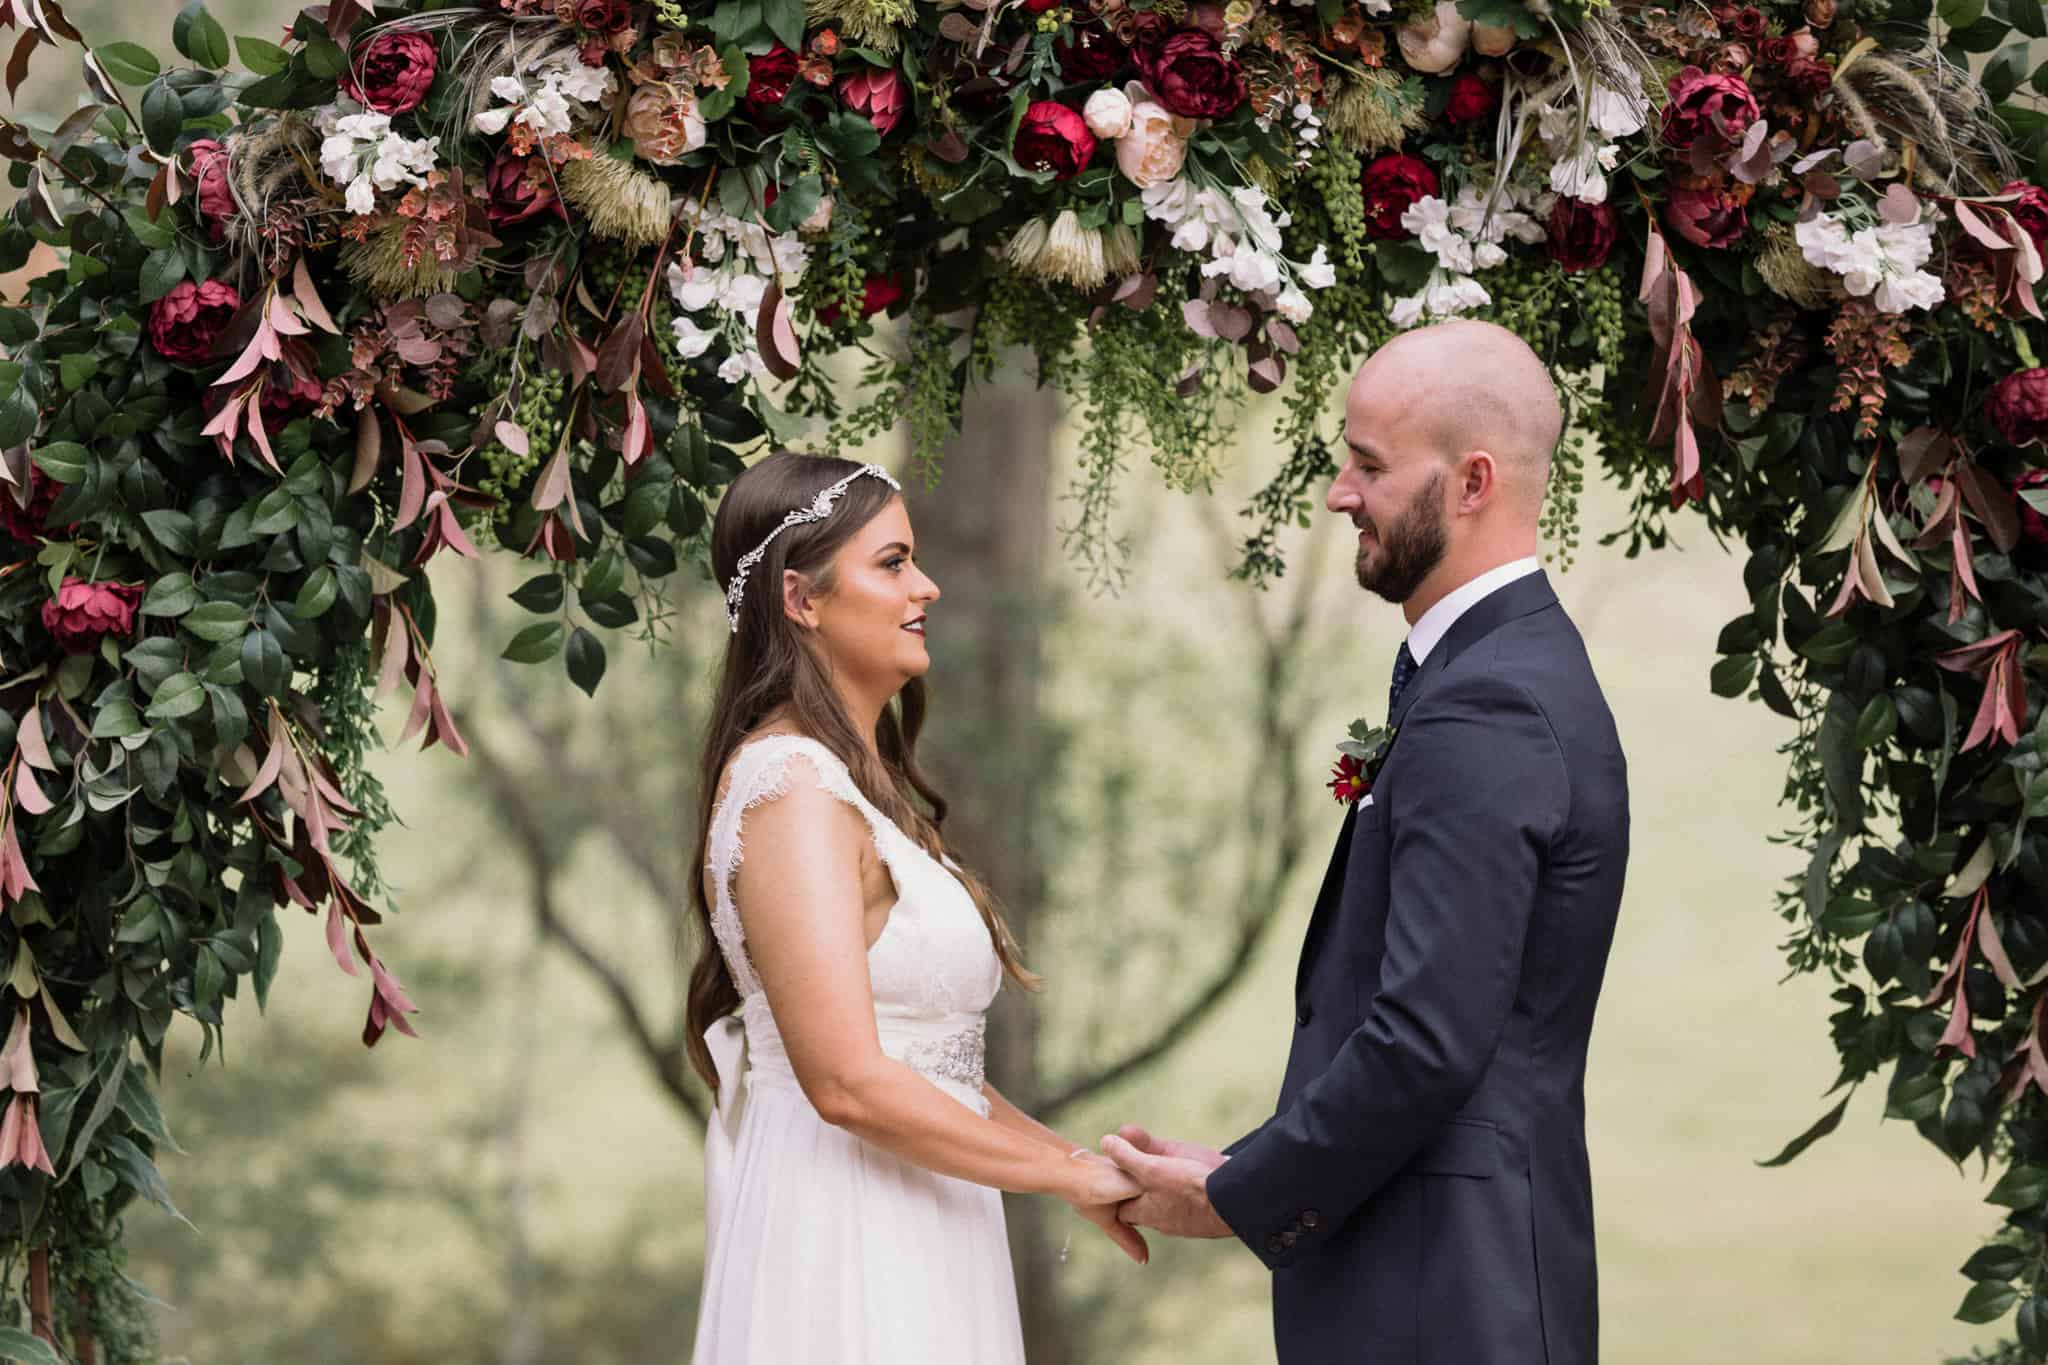 Bride and groom hold hands in front of large floral display at ceremony Captured by James White Hunter Valley Wedding Photographer